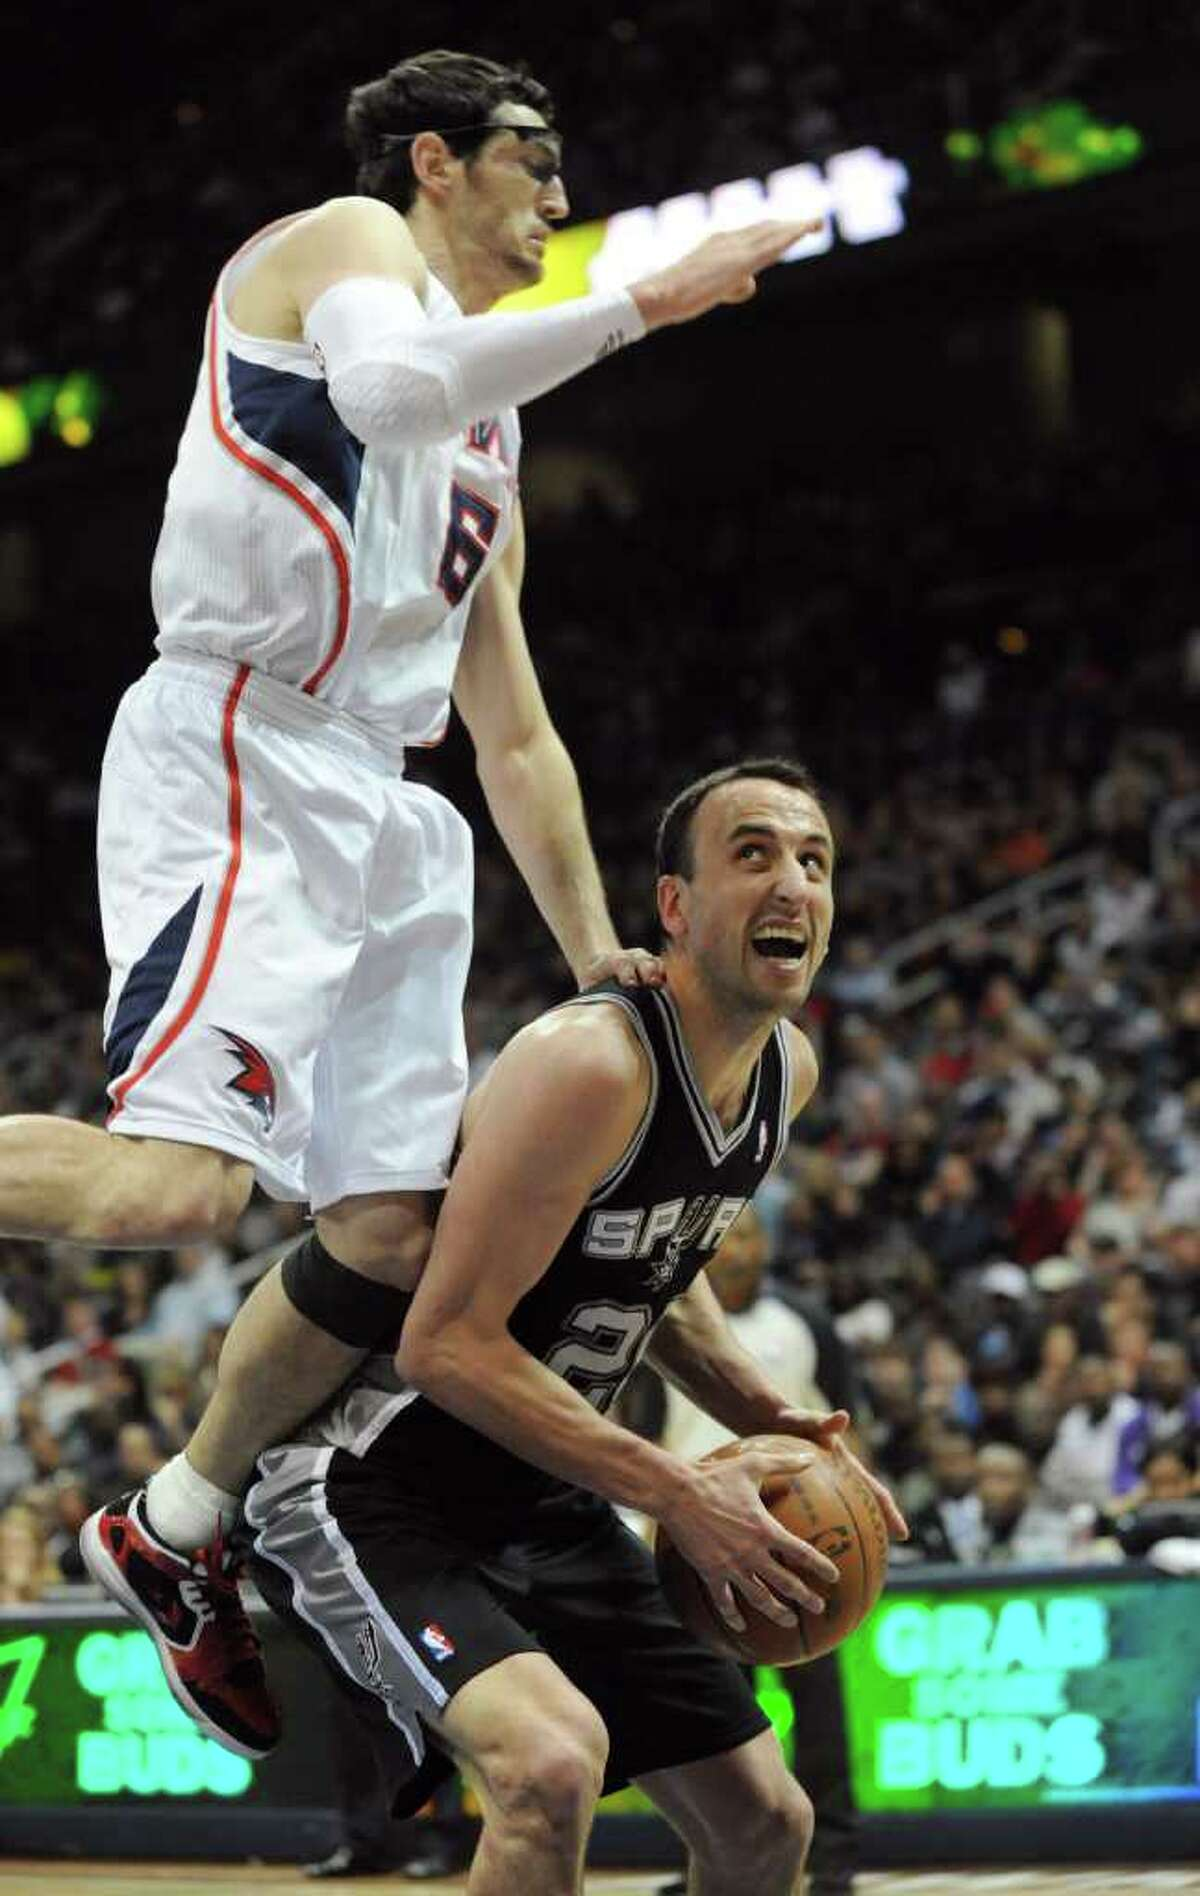 Atlanta Hawks guard Kirk Hinrich, left, commits a flagrant foul on San Antonio Spurs guard Manu Ginobili, of Argentina, in the second half during an NBA basketball game Tuesday, April 5, 2011, in Atlanta. The Spurs defeated the Hawks 97-90.